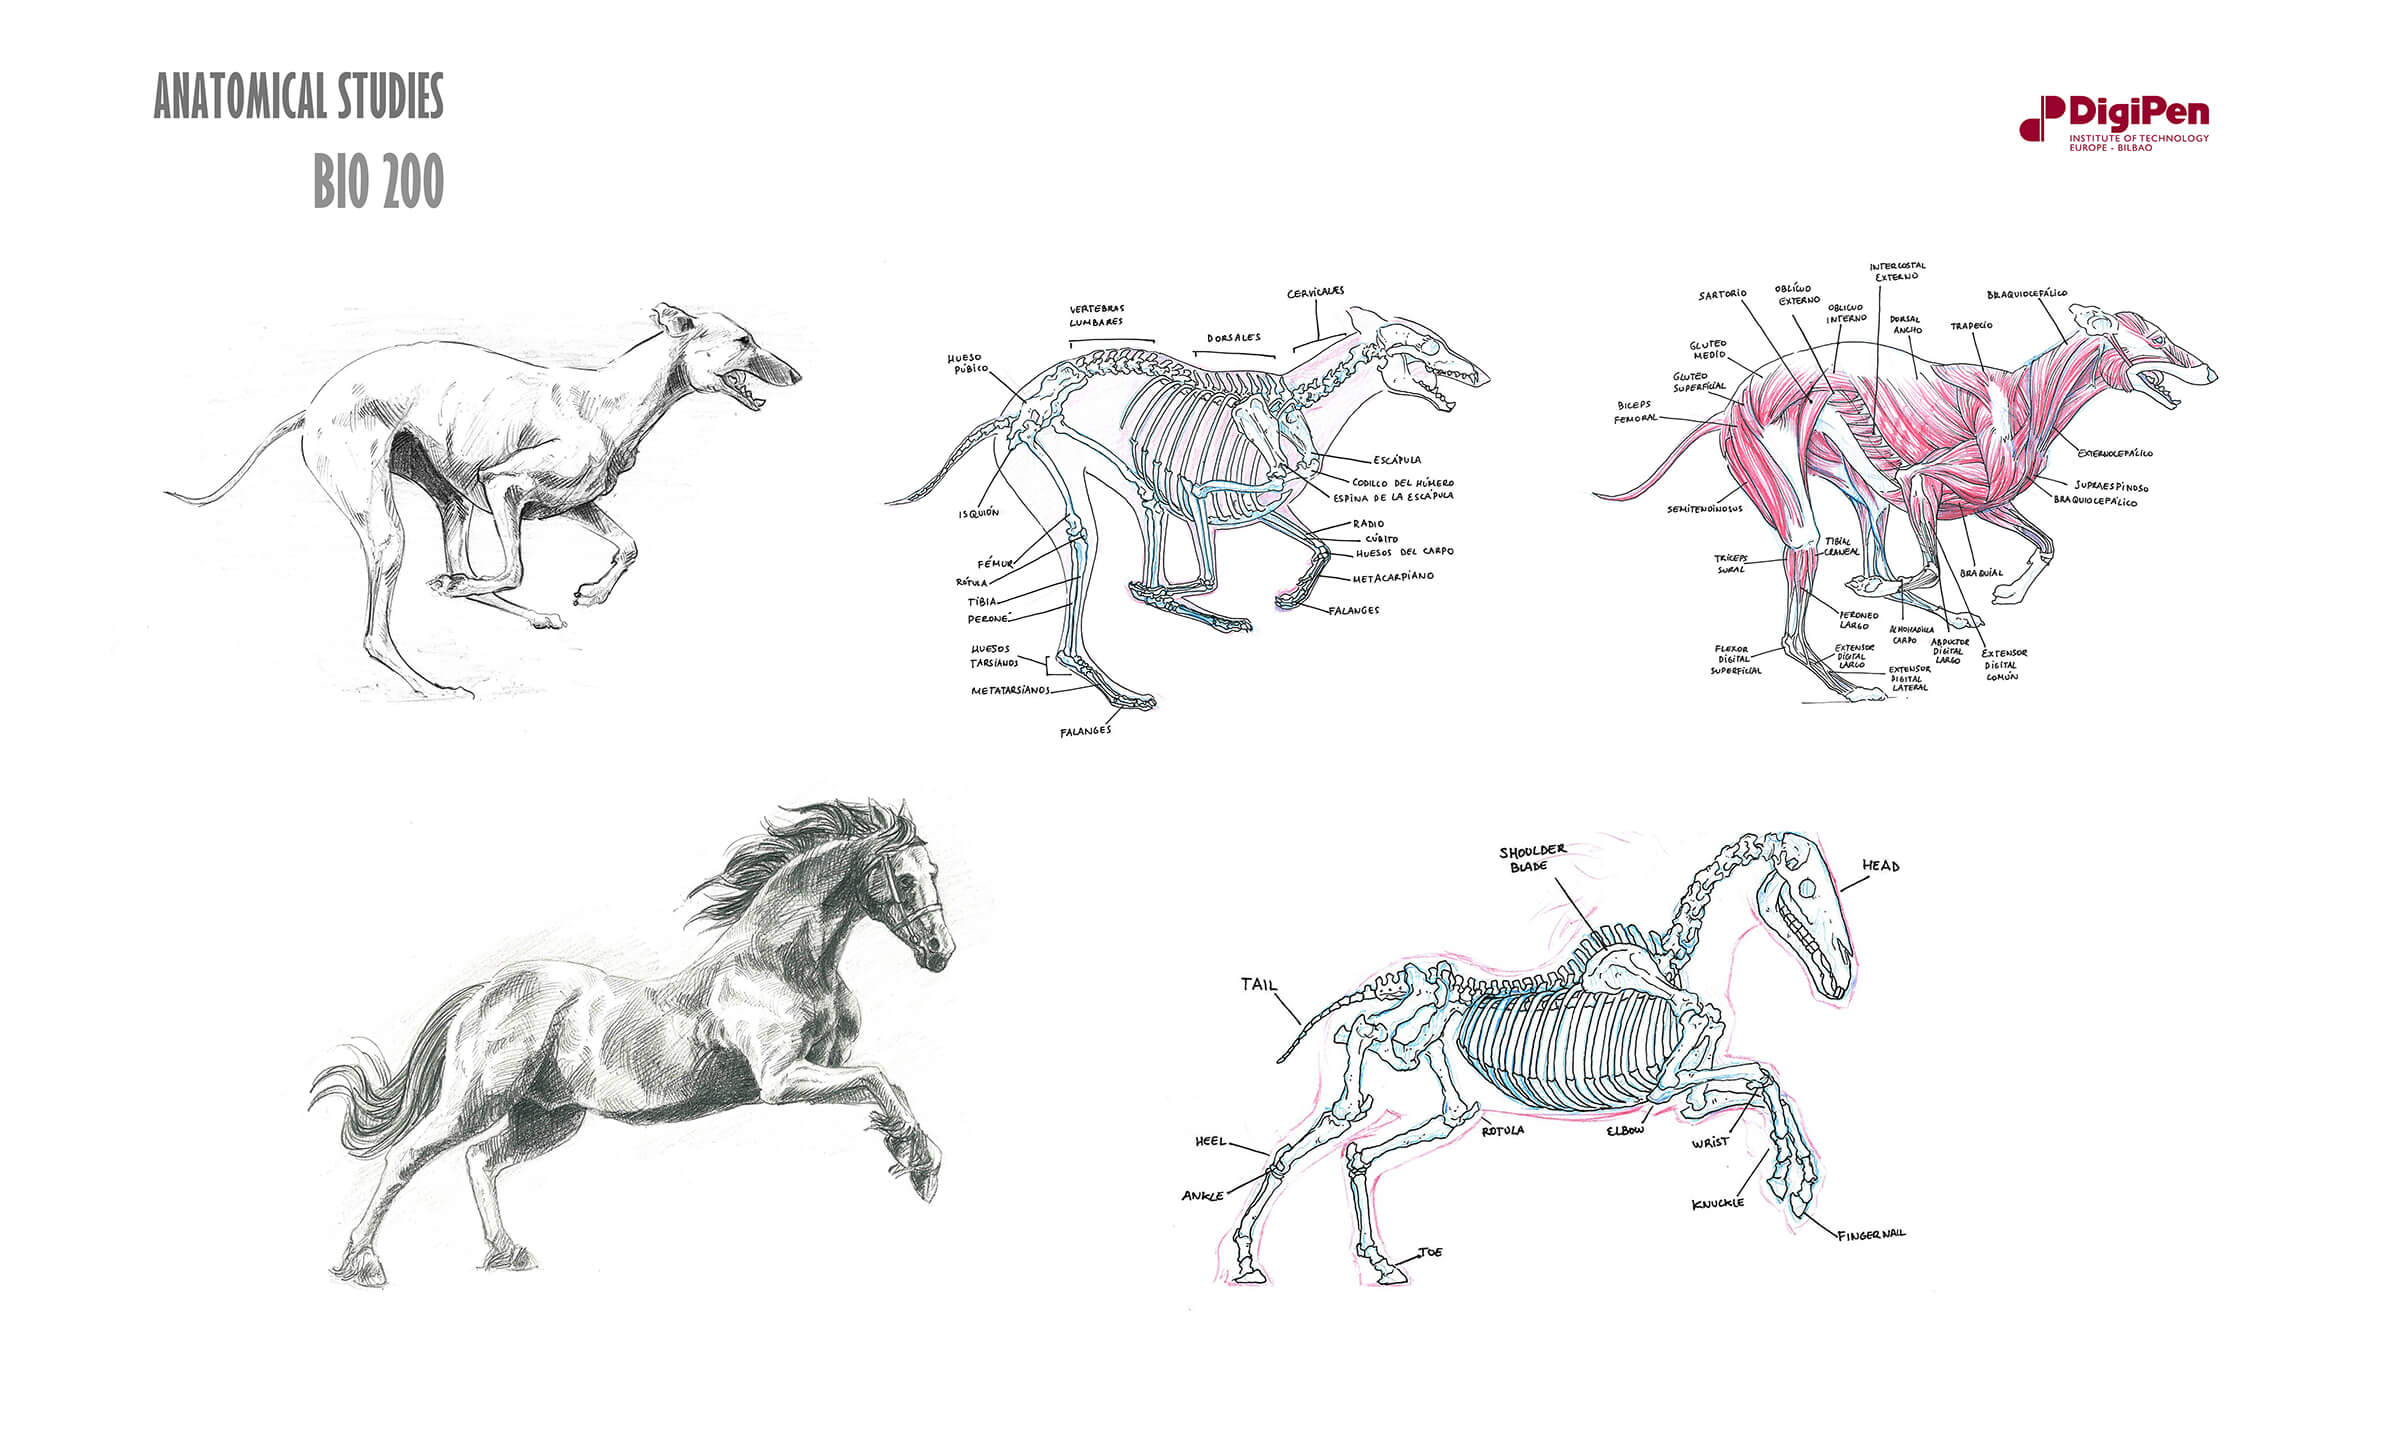 Black-and-white sketches of a dog and horse mid-run/gallop and cross-sections of their skeletal and muscular systems.